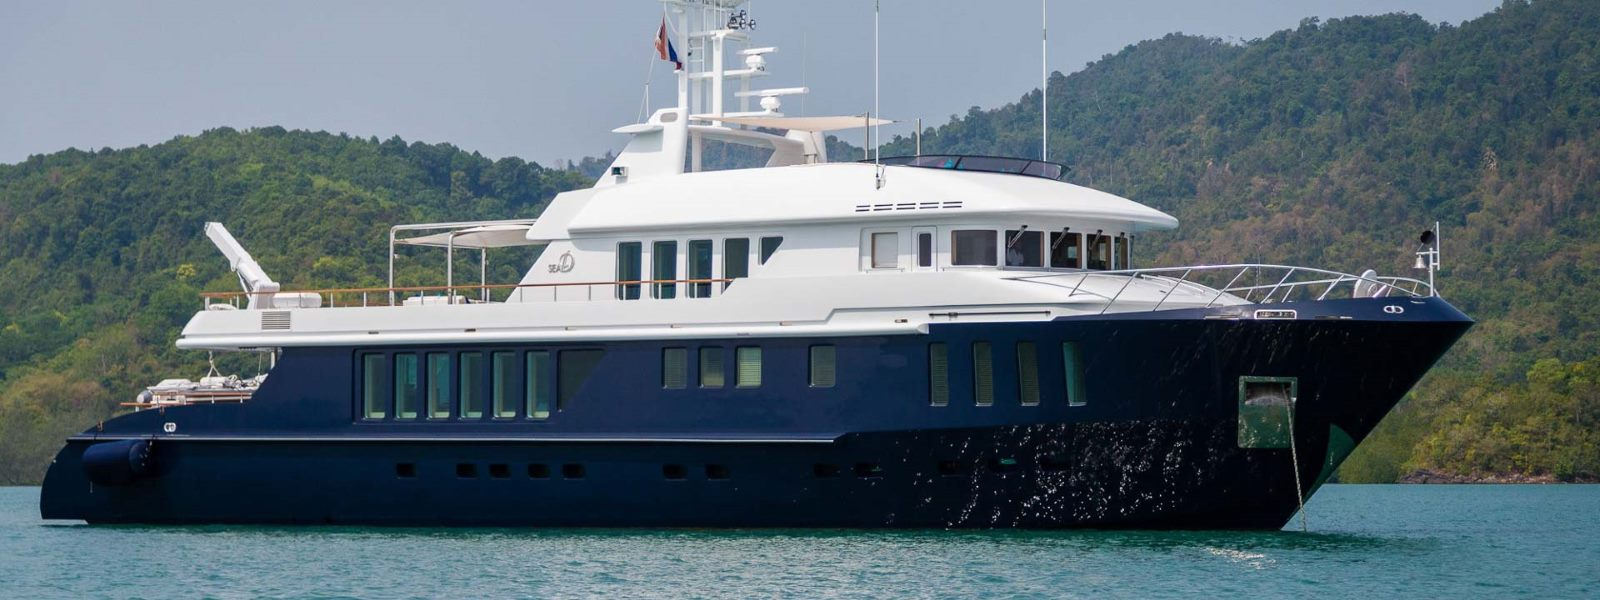 Eclipse Marine superyacht reifit and repair